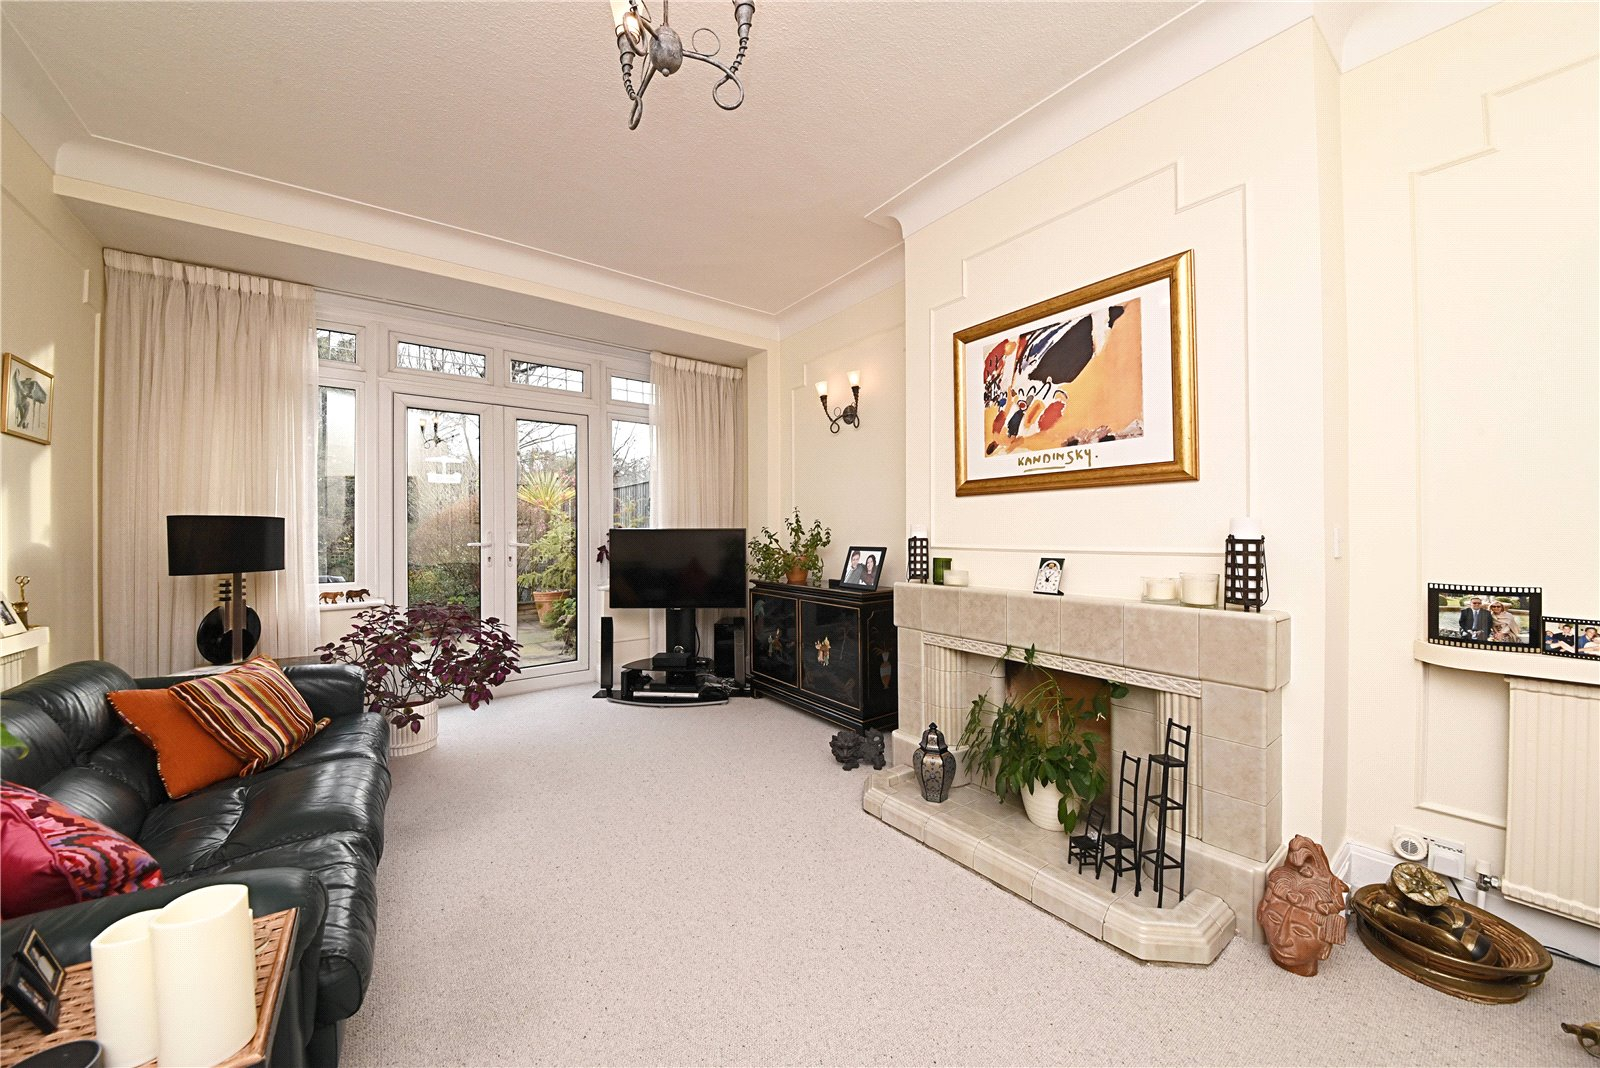 4 bed house for sale in Hendon, NW4 1LJ  - Property Image 8